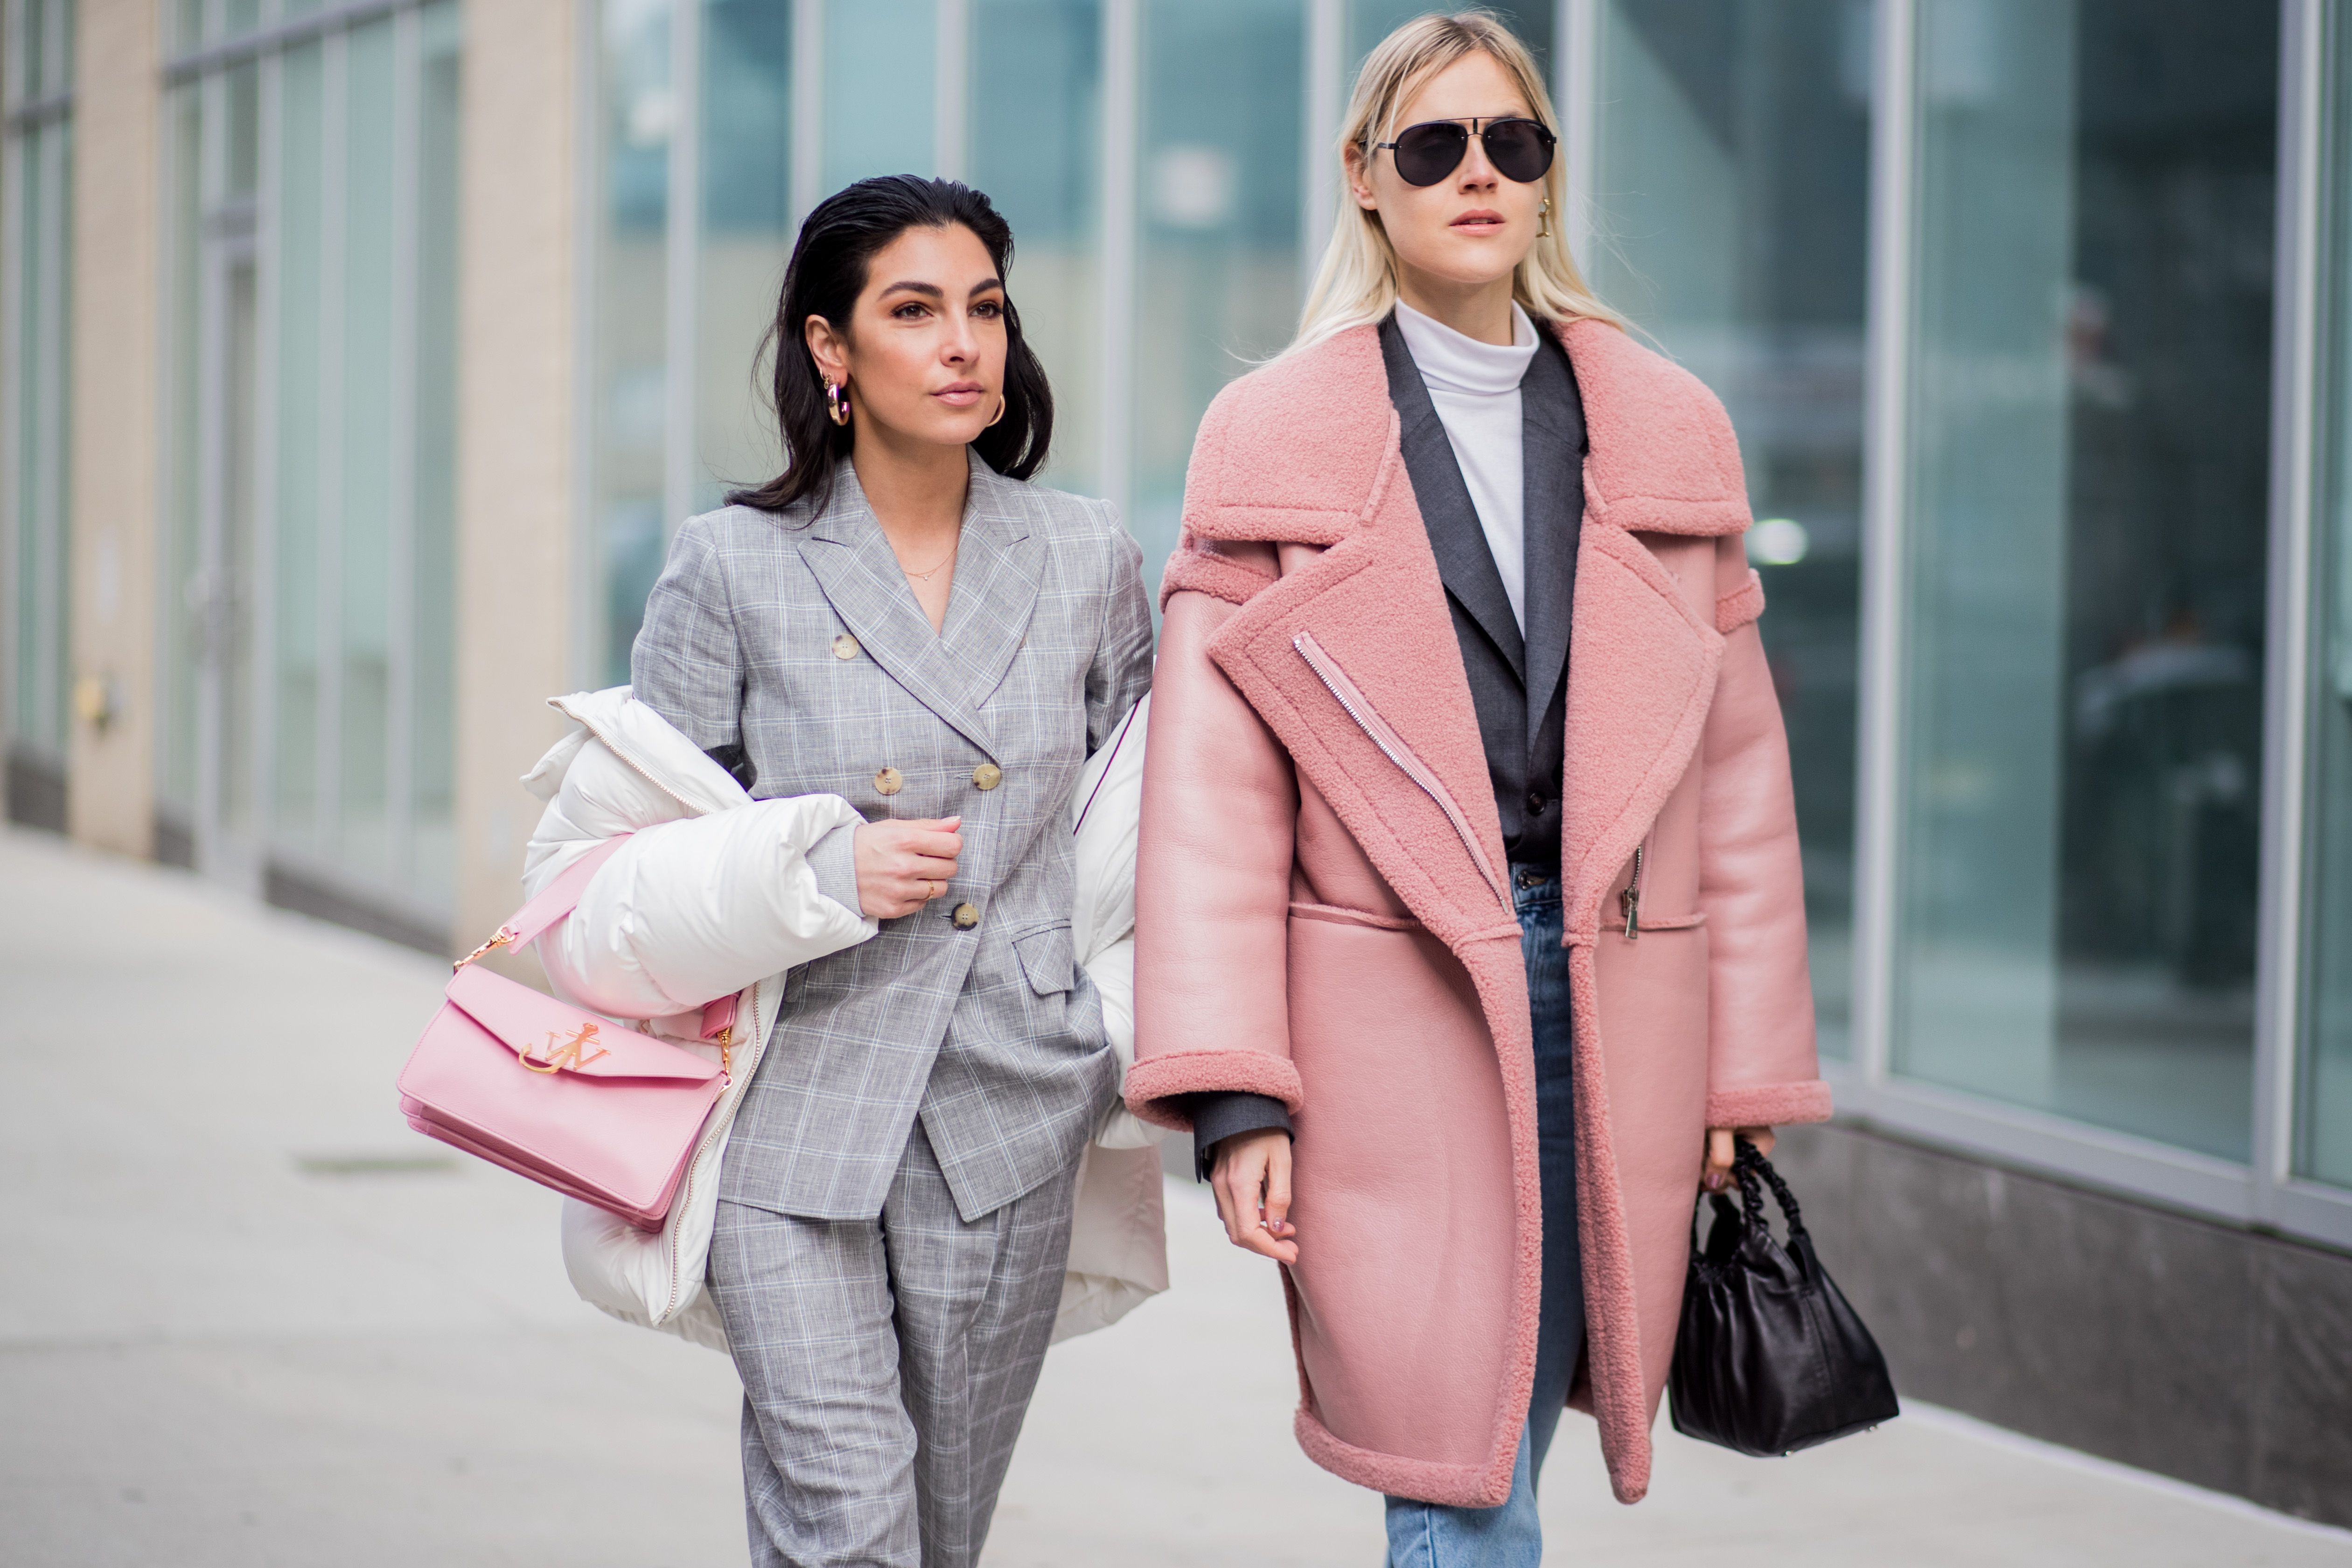 5 Stylish Winter Outfits to Wear When You Take That Snowstorm Selfie